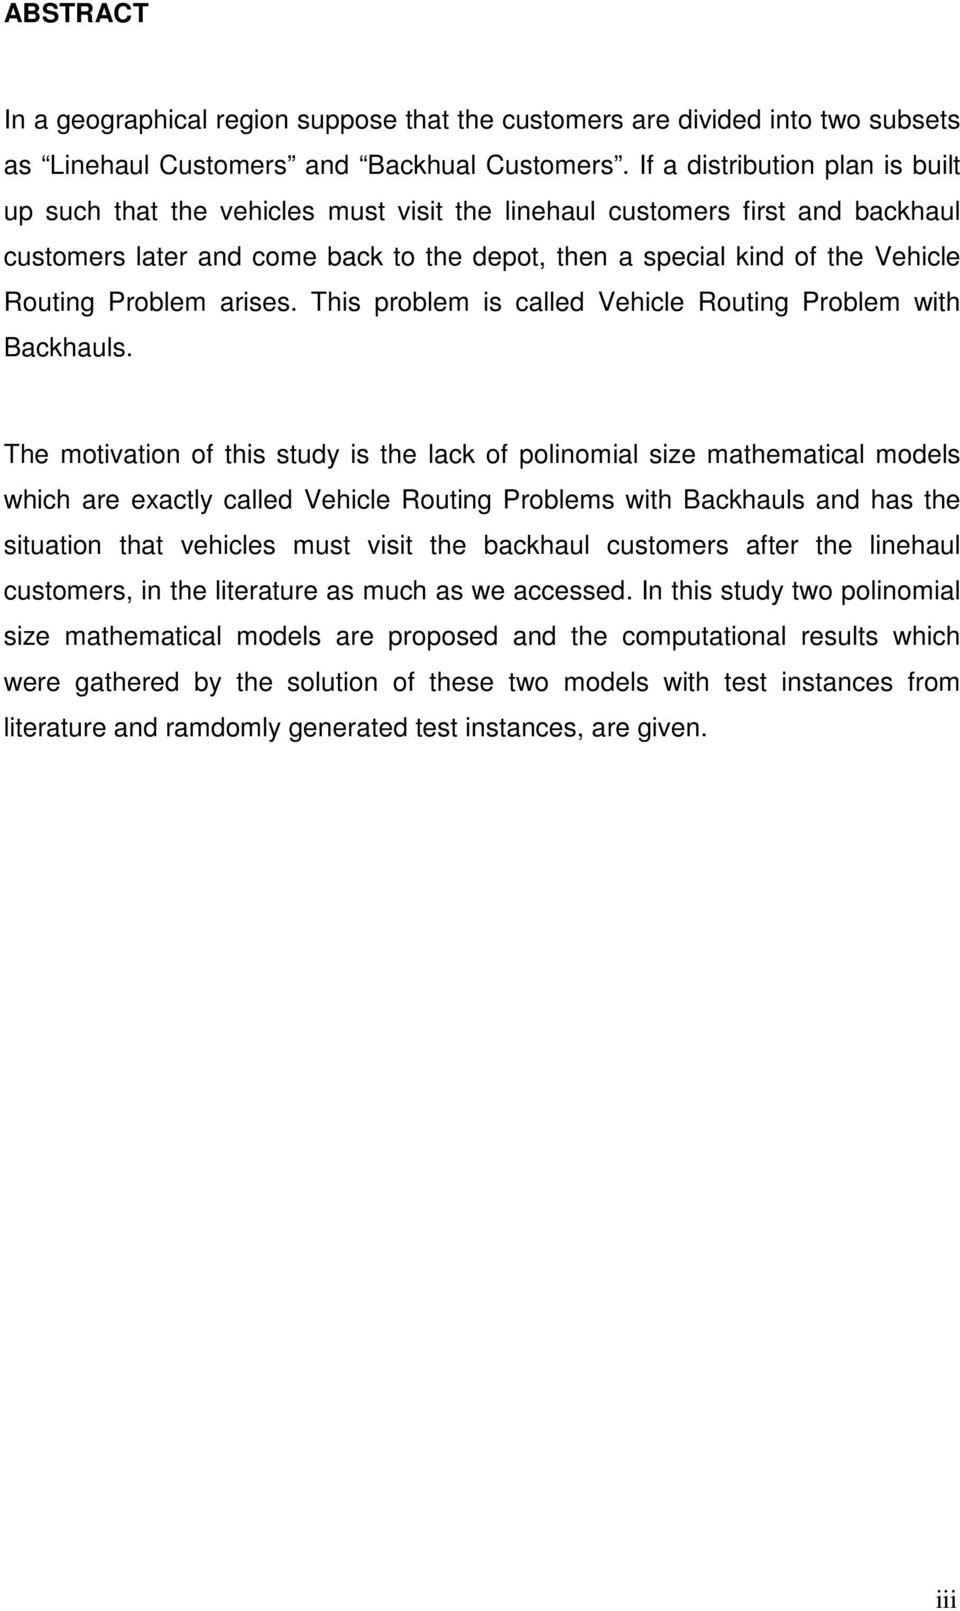 Problem arises. This problem is called Vehicle Routing Problem with Backhauls.